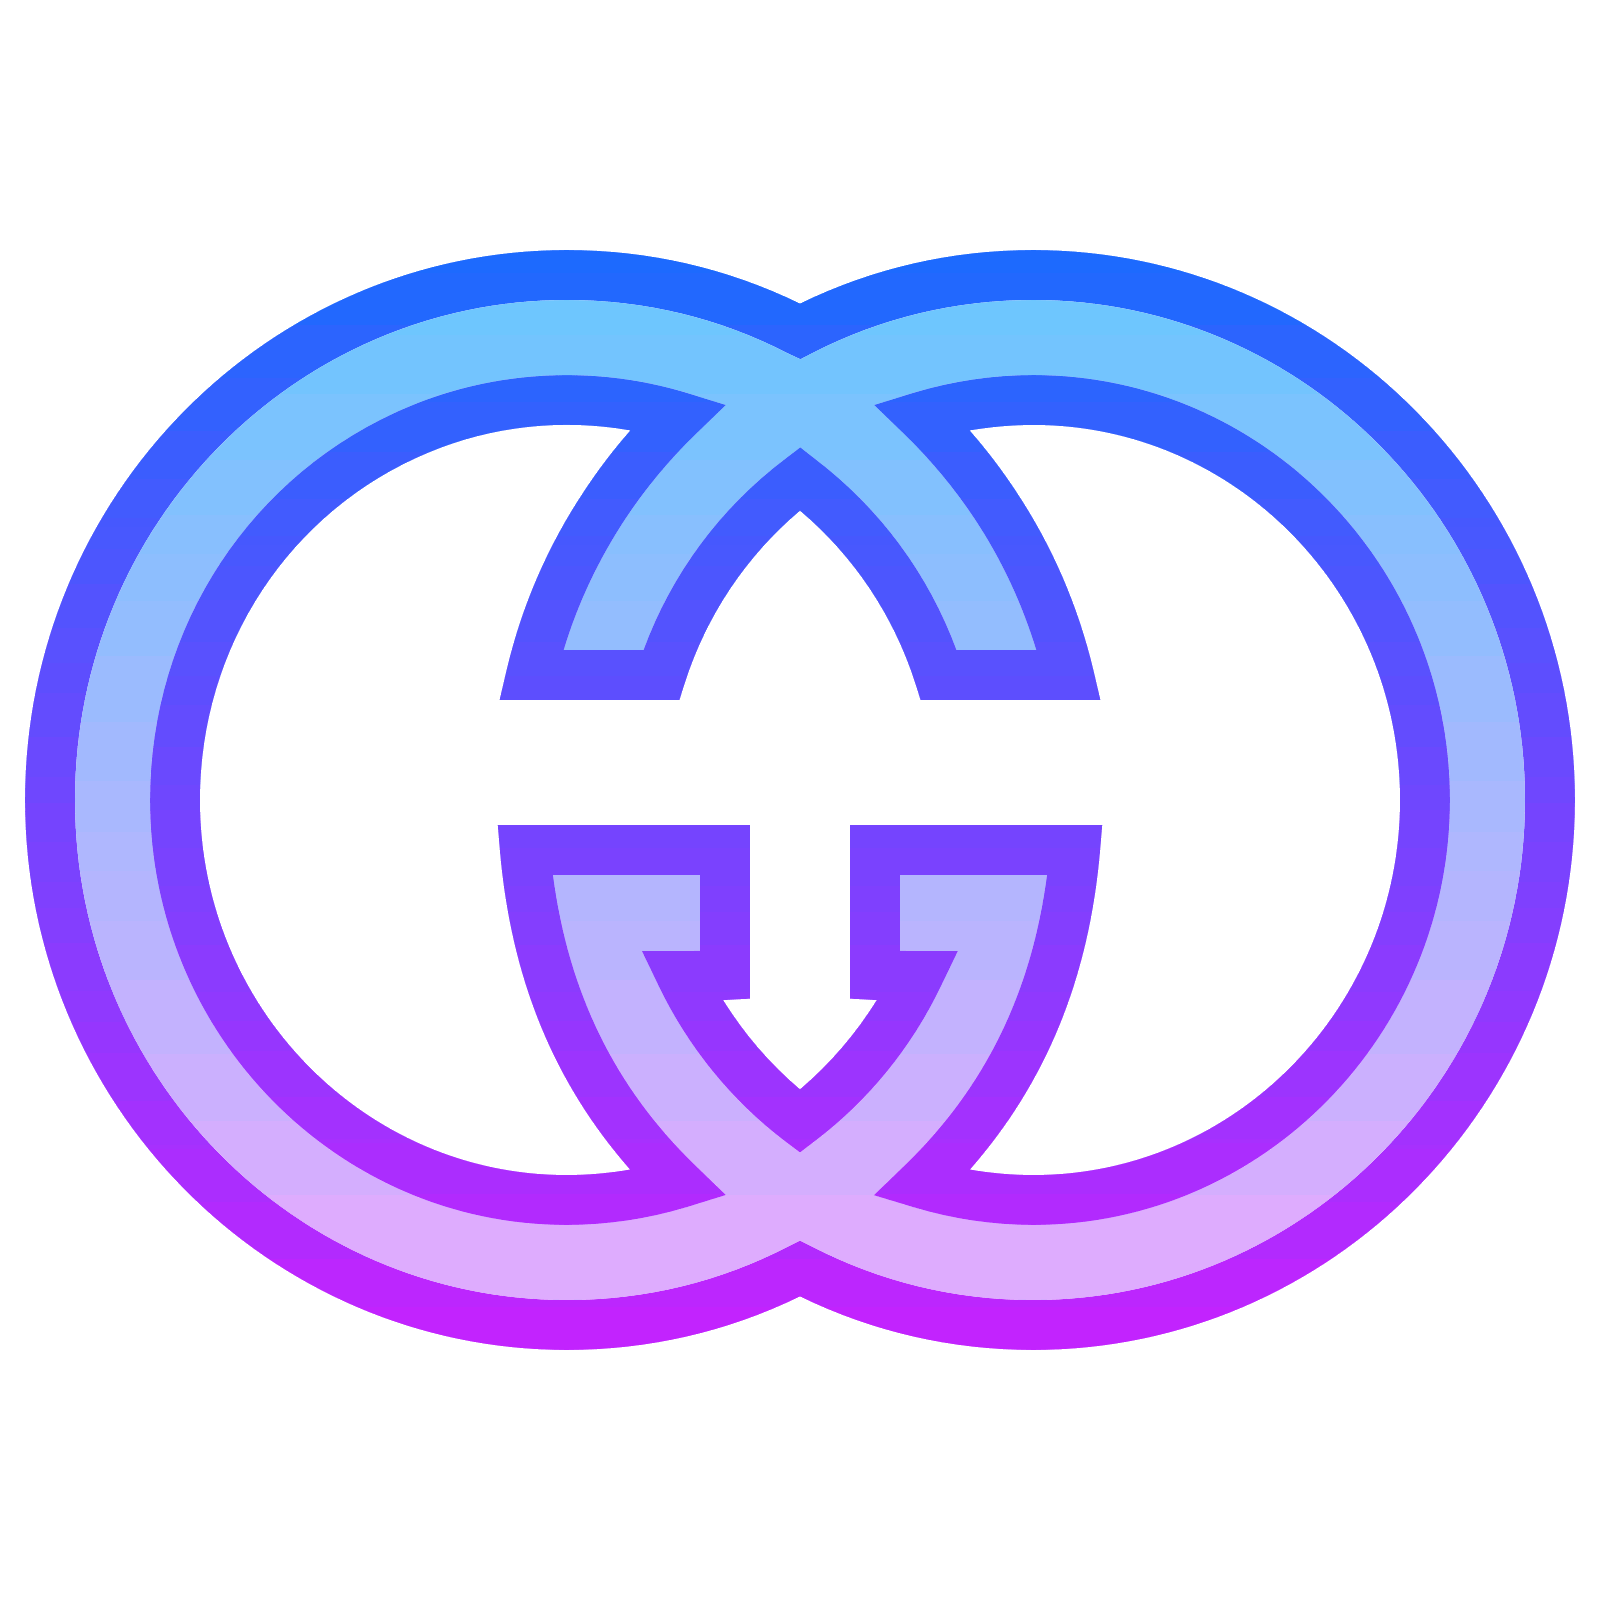 Gucci png. Computer icons info icon